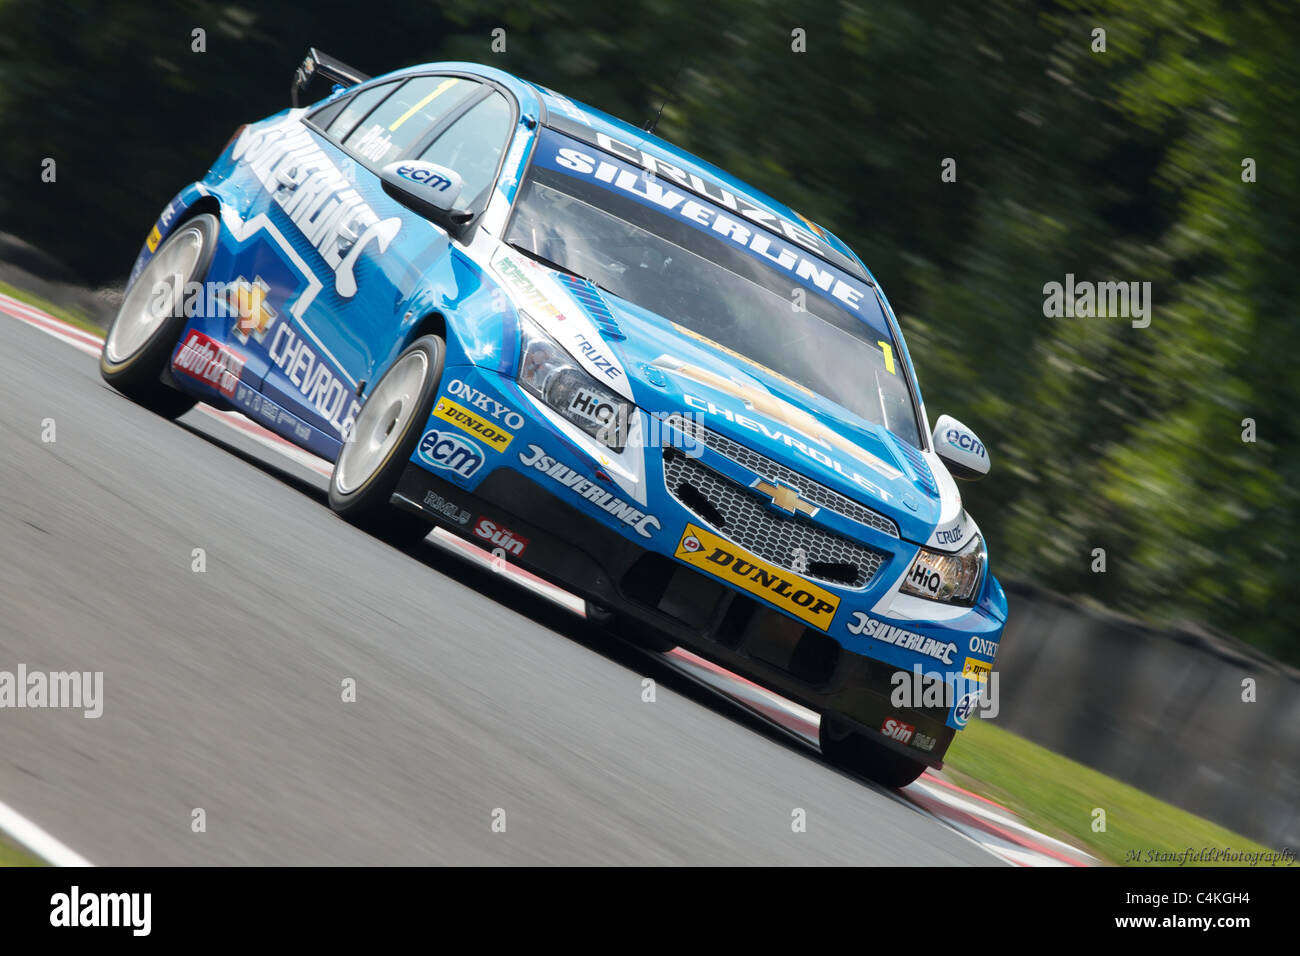 Jason Plato at oulton park - Stock Image